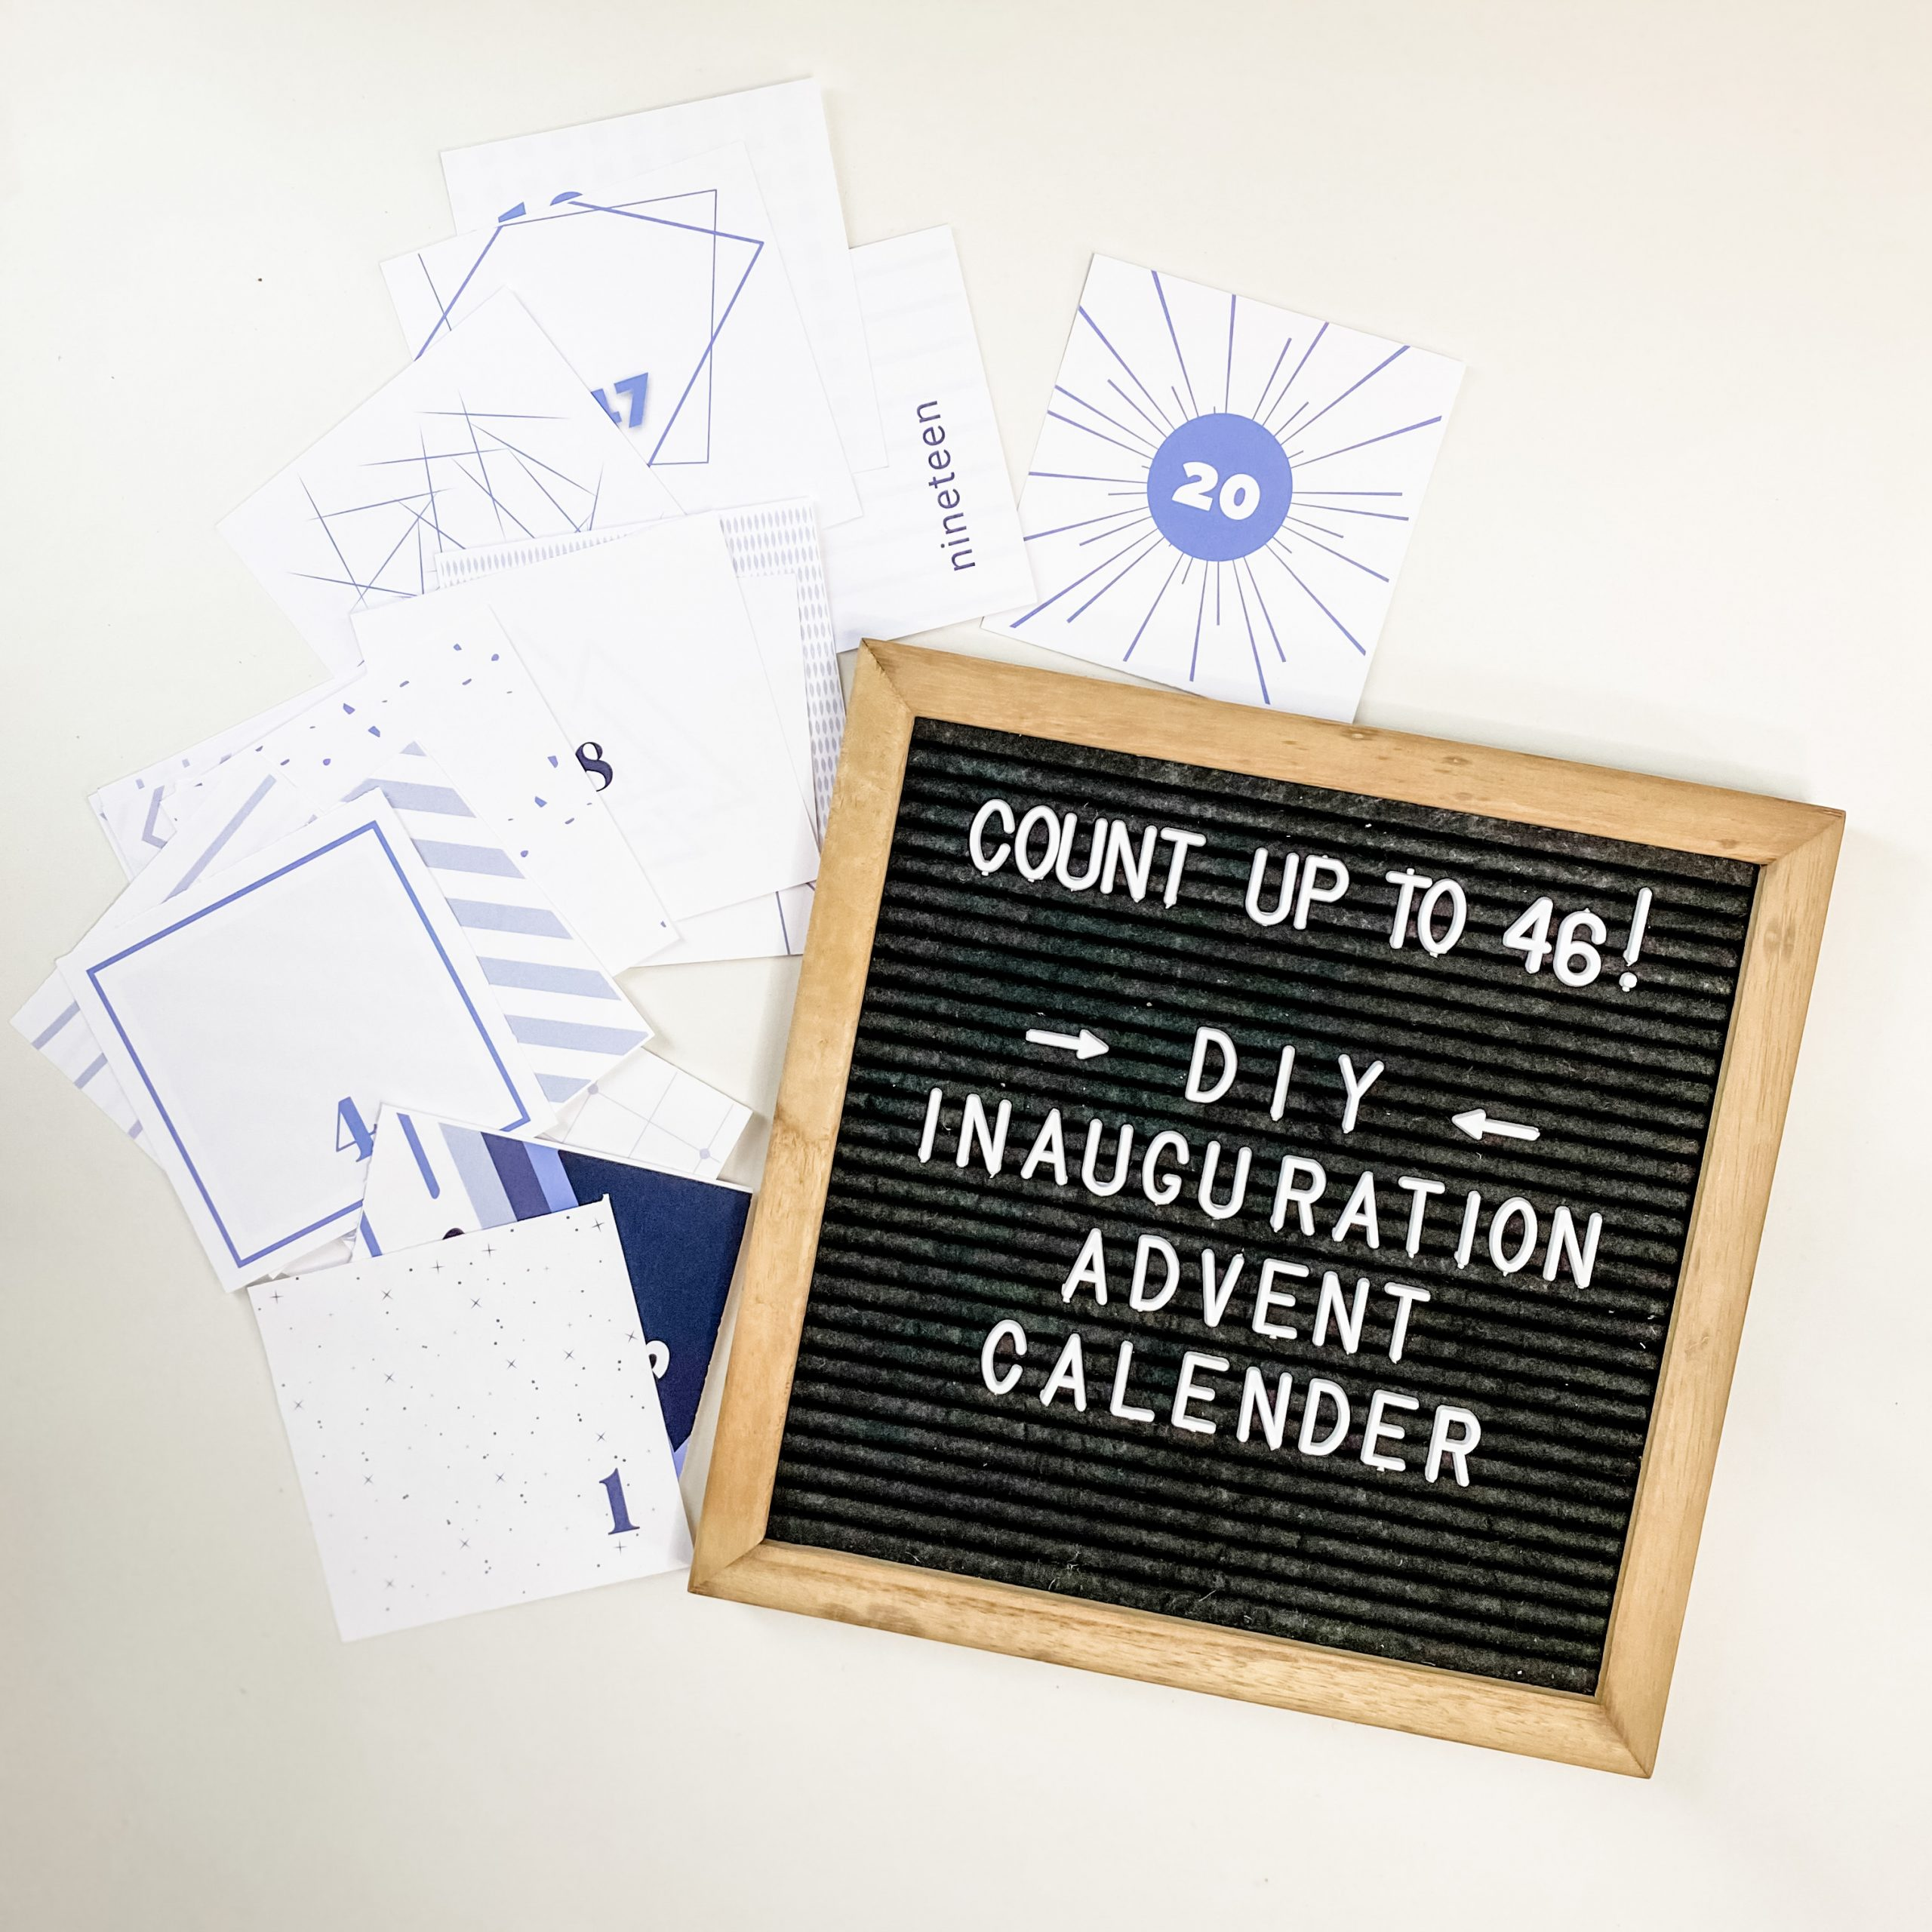 Count-Up-to-46-BidenHarris-DIY-Inauguration-Calendar